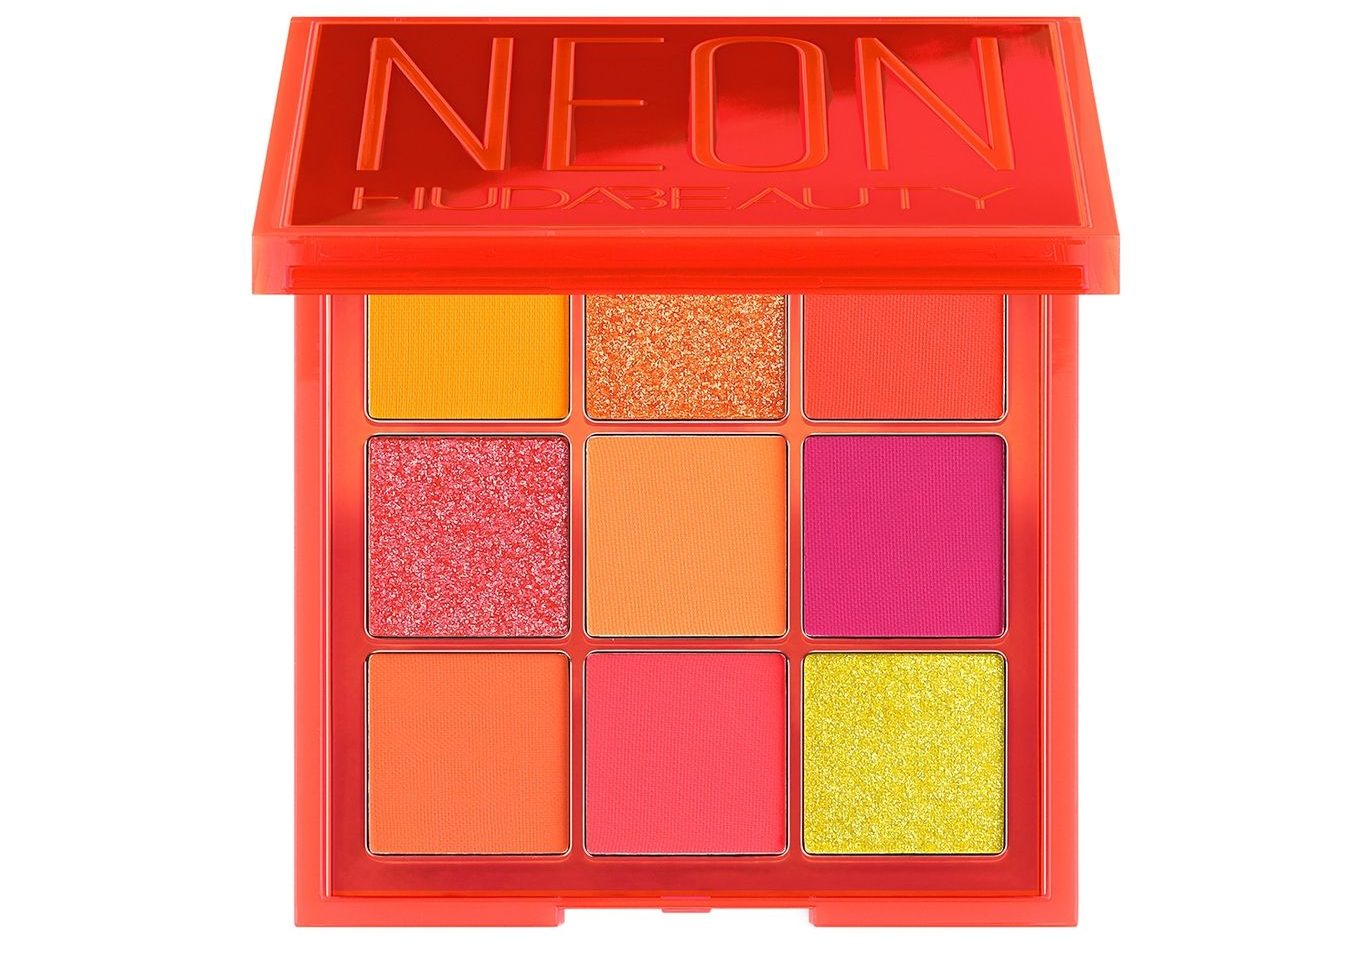 My Celebrity Life – Huda Beauty Neon Orange Obsessions Pressed Pigment Palette